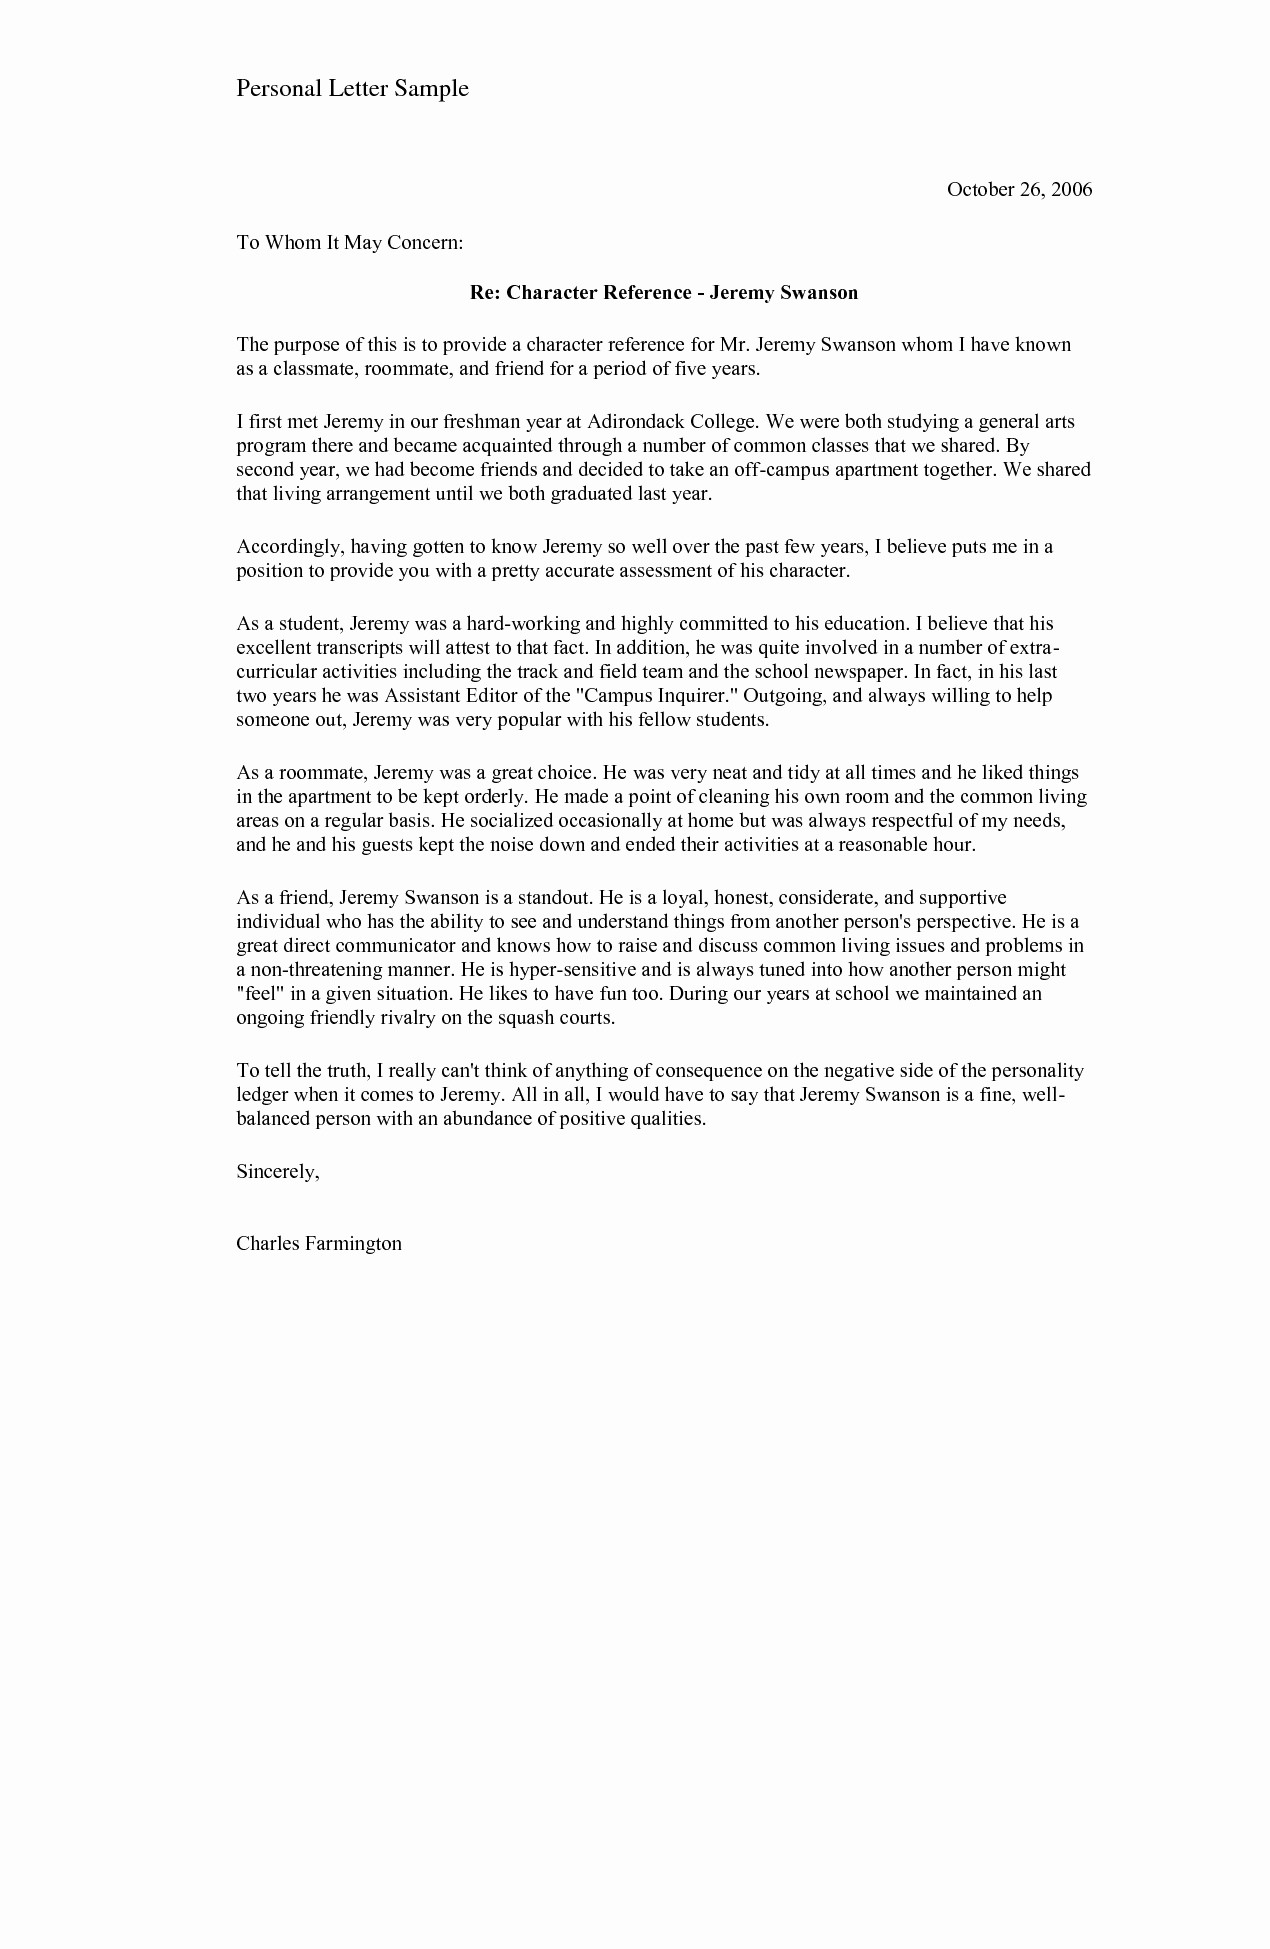 Format Of A Recomendation Letter New Re Mendation Letter for A Friend Template